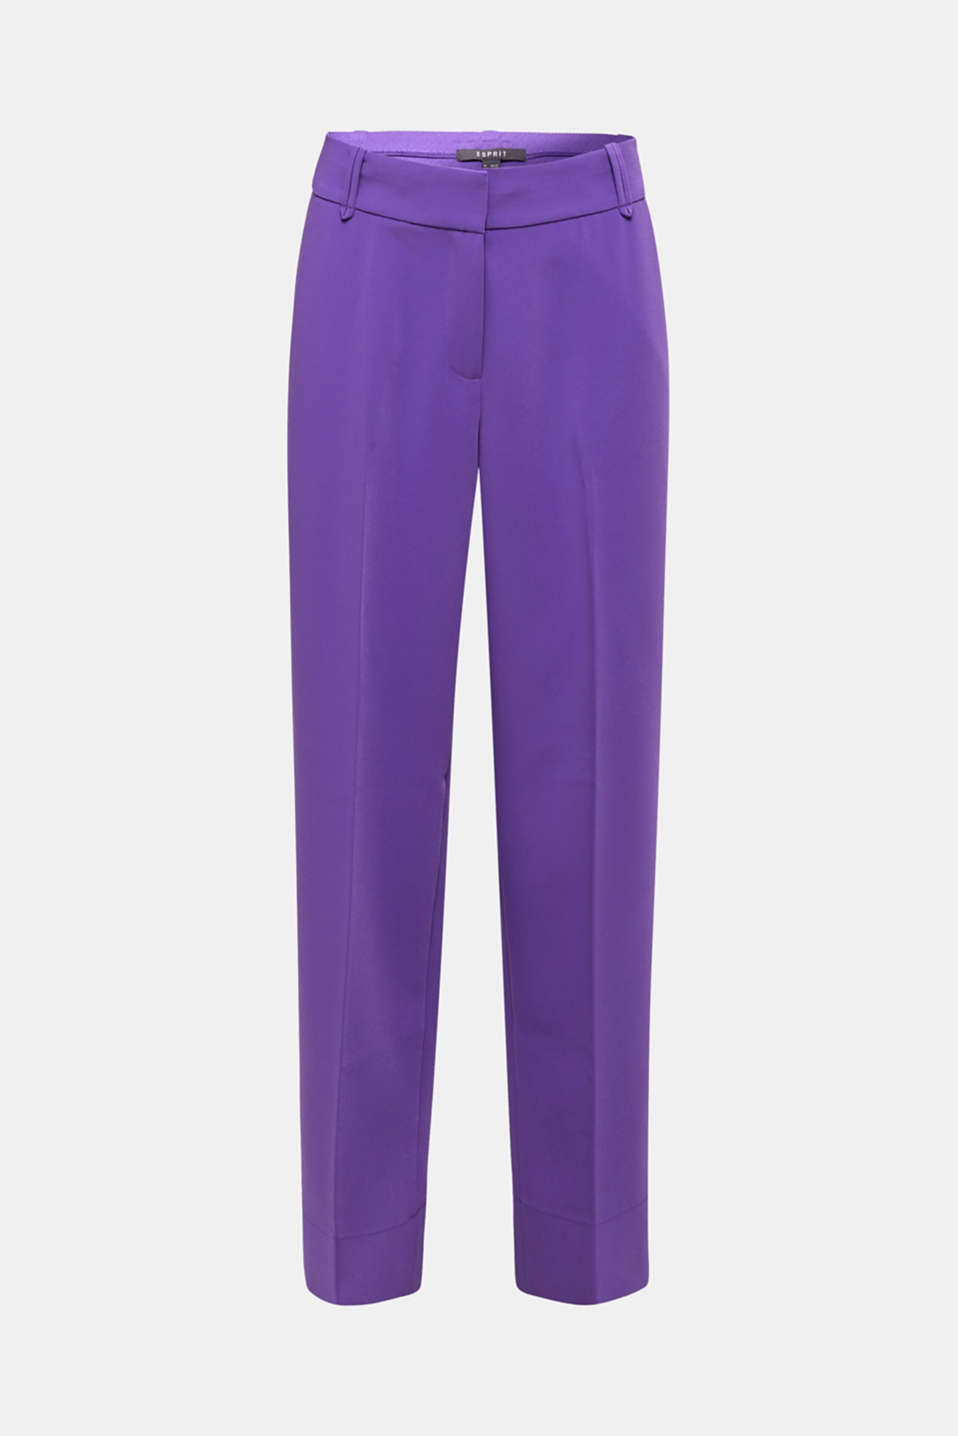 TECHNO TWILL mix + match wide stretch trousers, PURPLE, detail image number 6